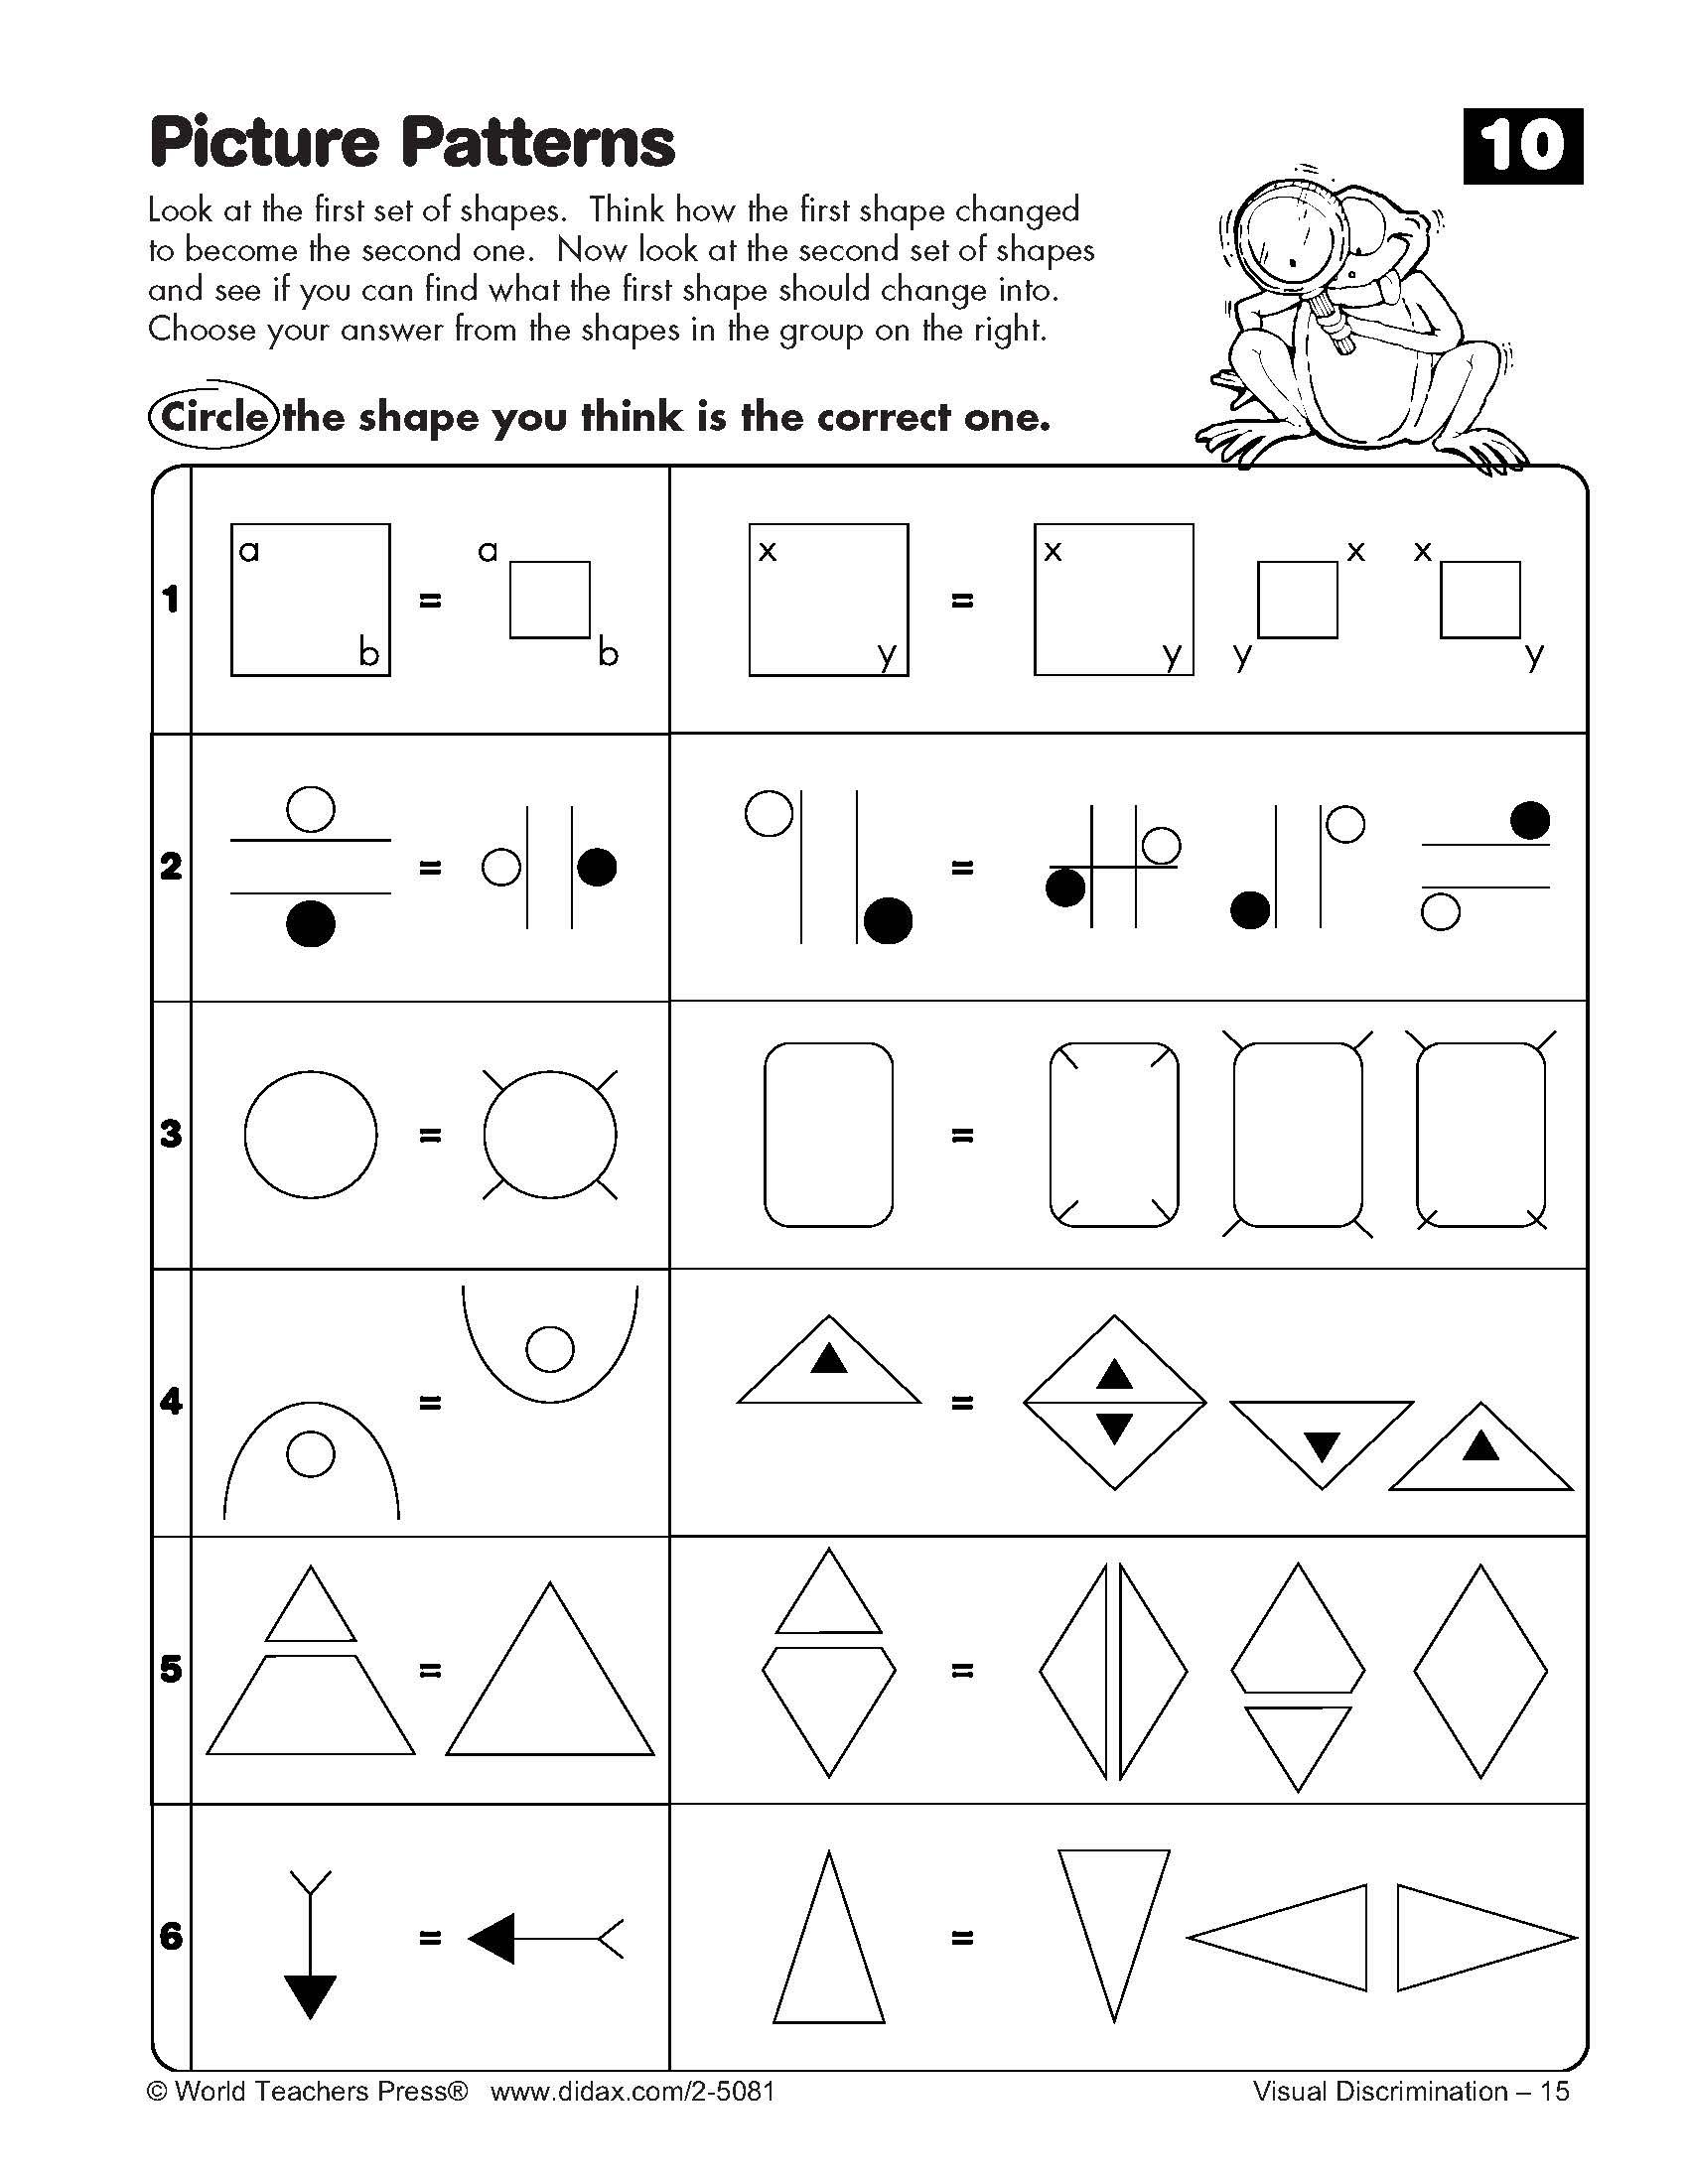 worksheet Analogies Worksheet visual discrimination olsat nnat pinterest third grade worksheets and critical thinking